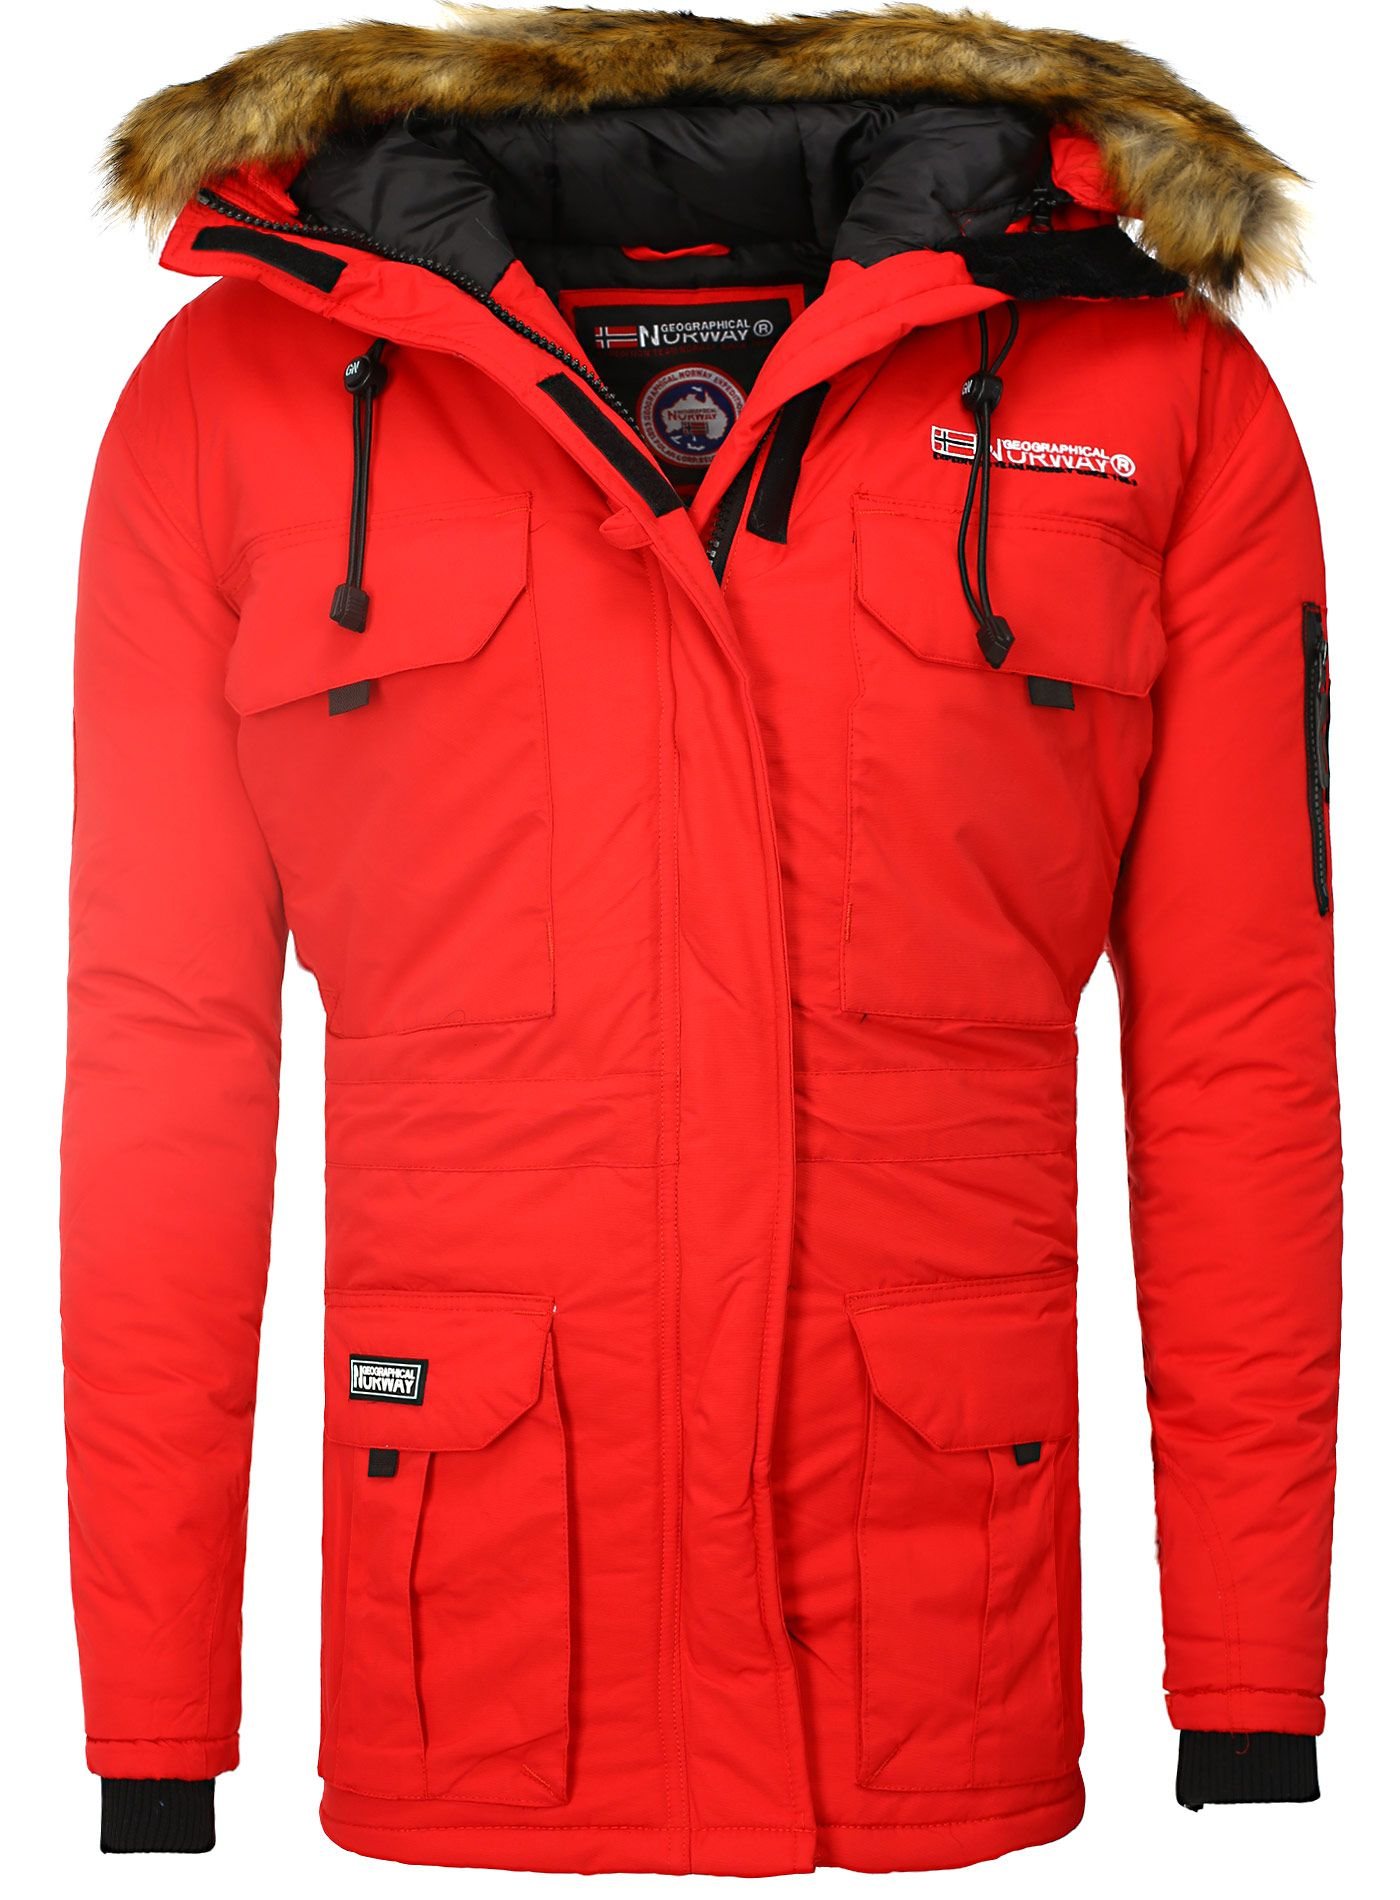 Jacket Men Jacket Geographical Norway red  96310e737a